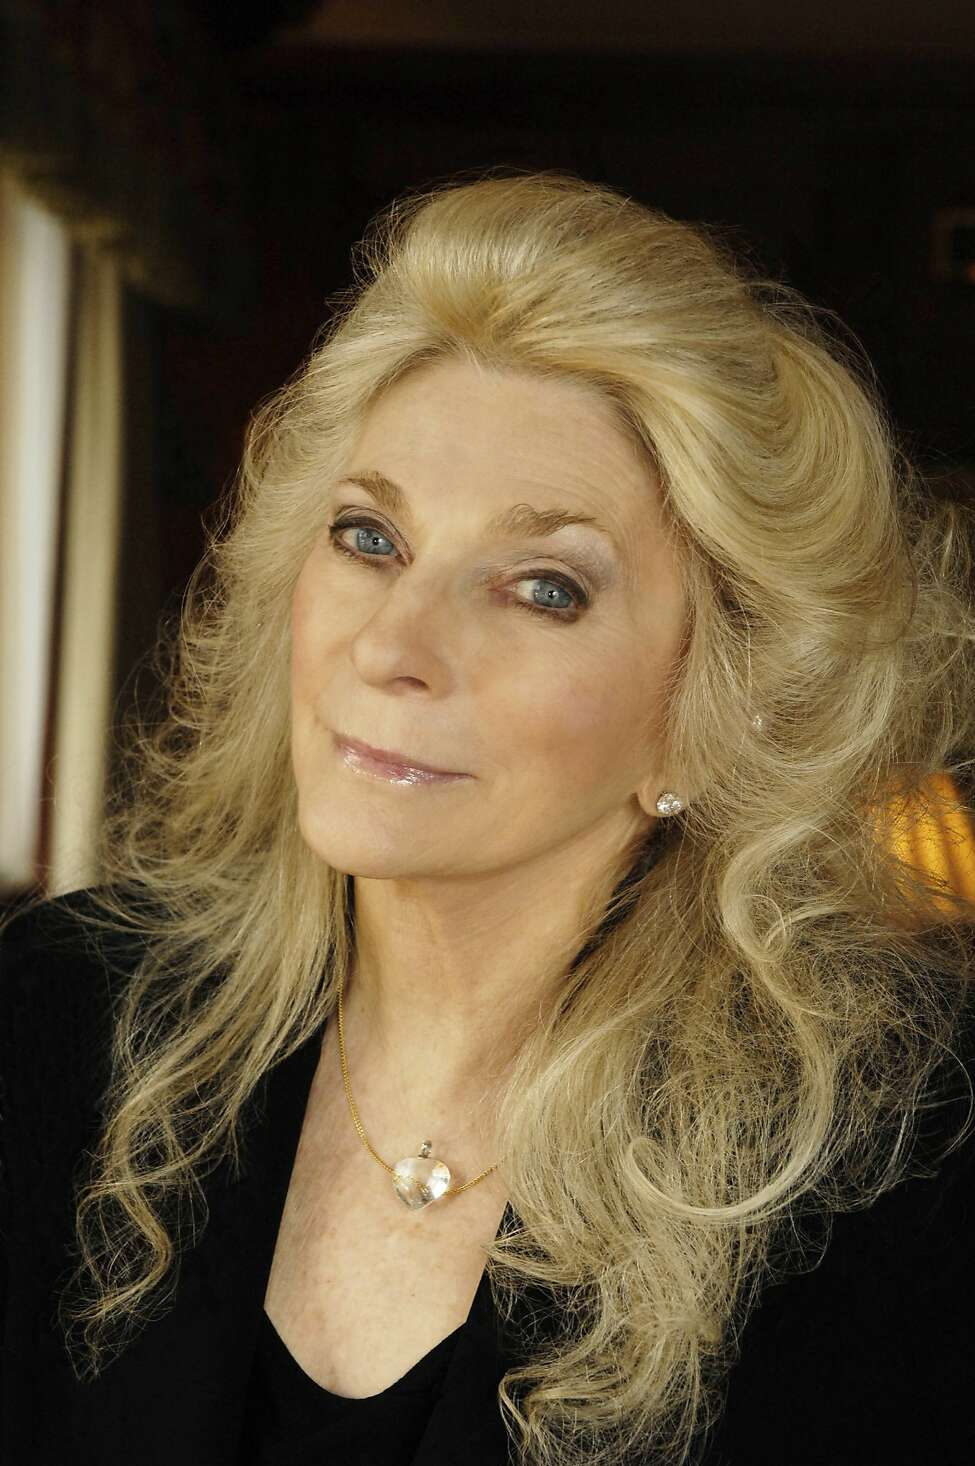 Musical legend Judy Collins comes to Caffe Lena in Saratoga Springs at 3 p.m. Sunday, Aug. 18.